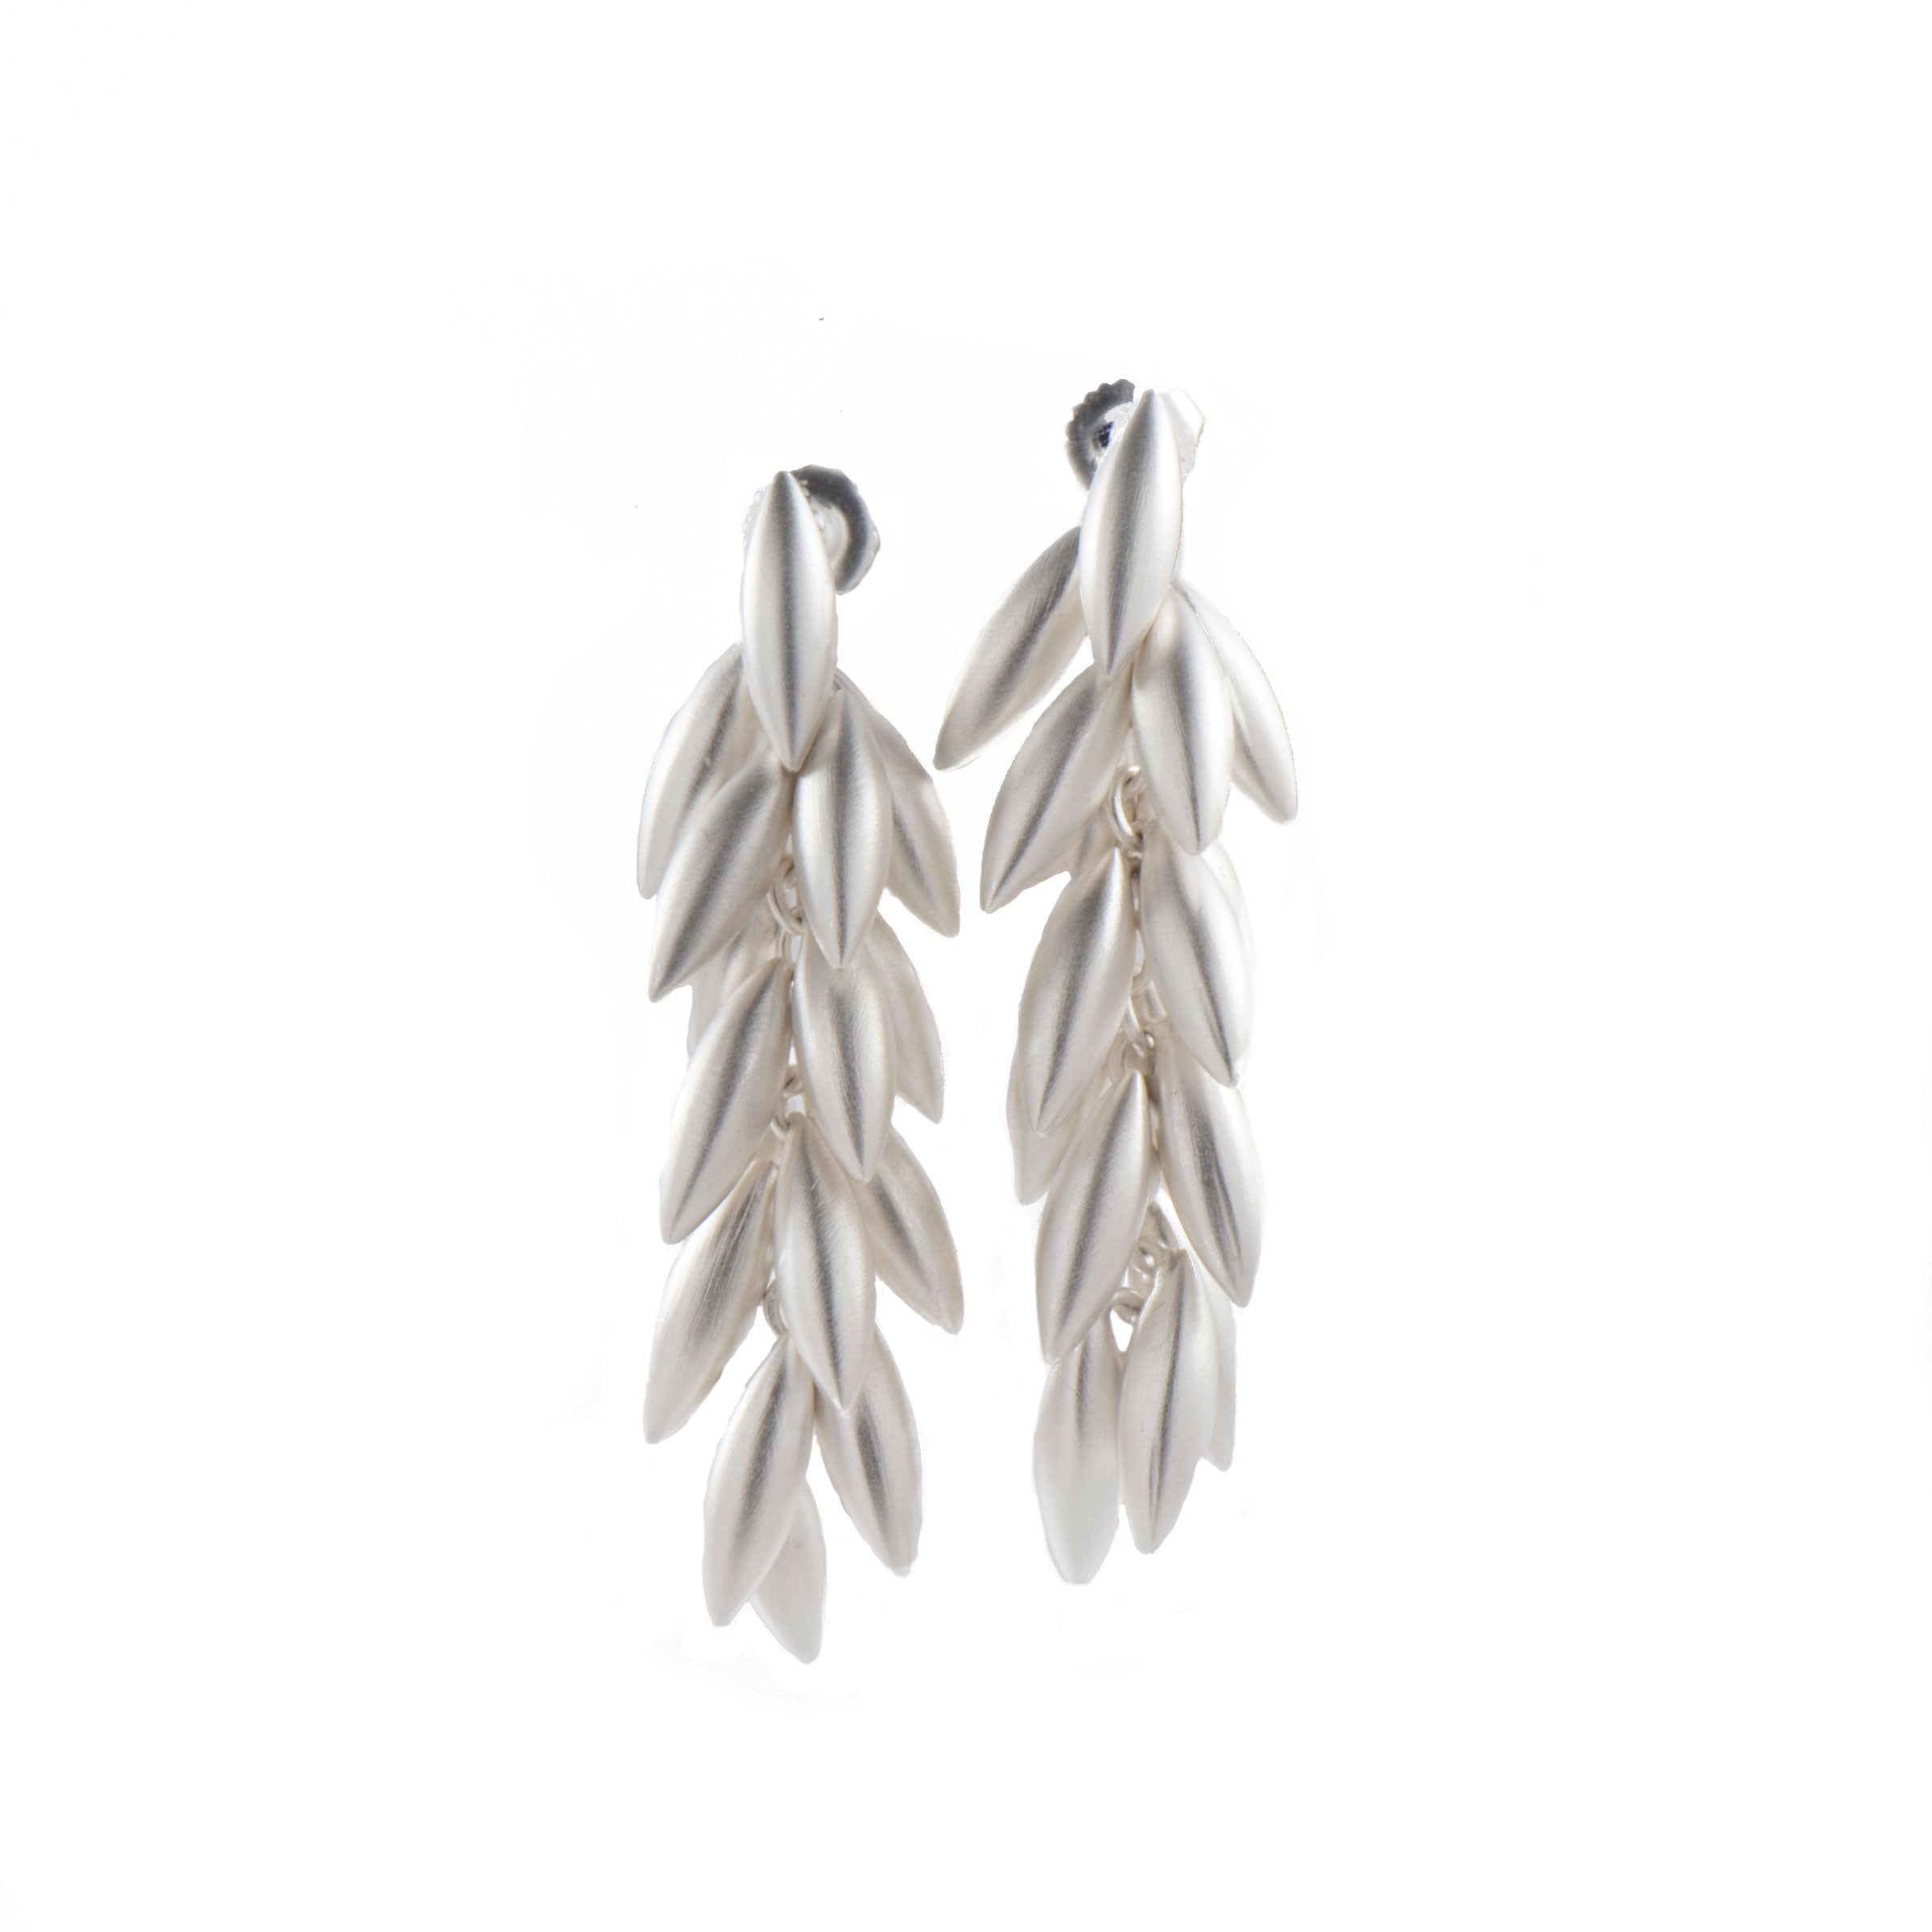 Seed Branch Dangle Earrings, Sterling Silver